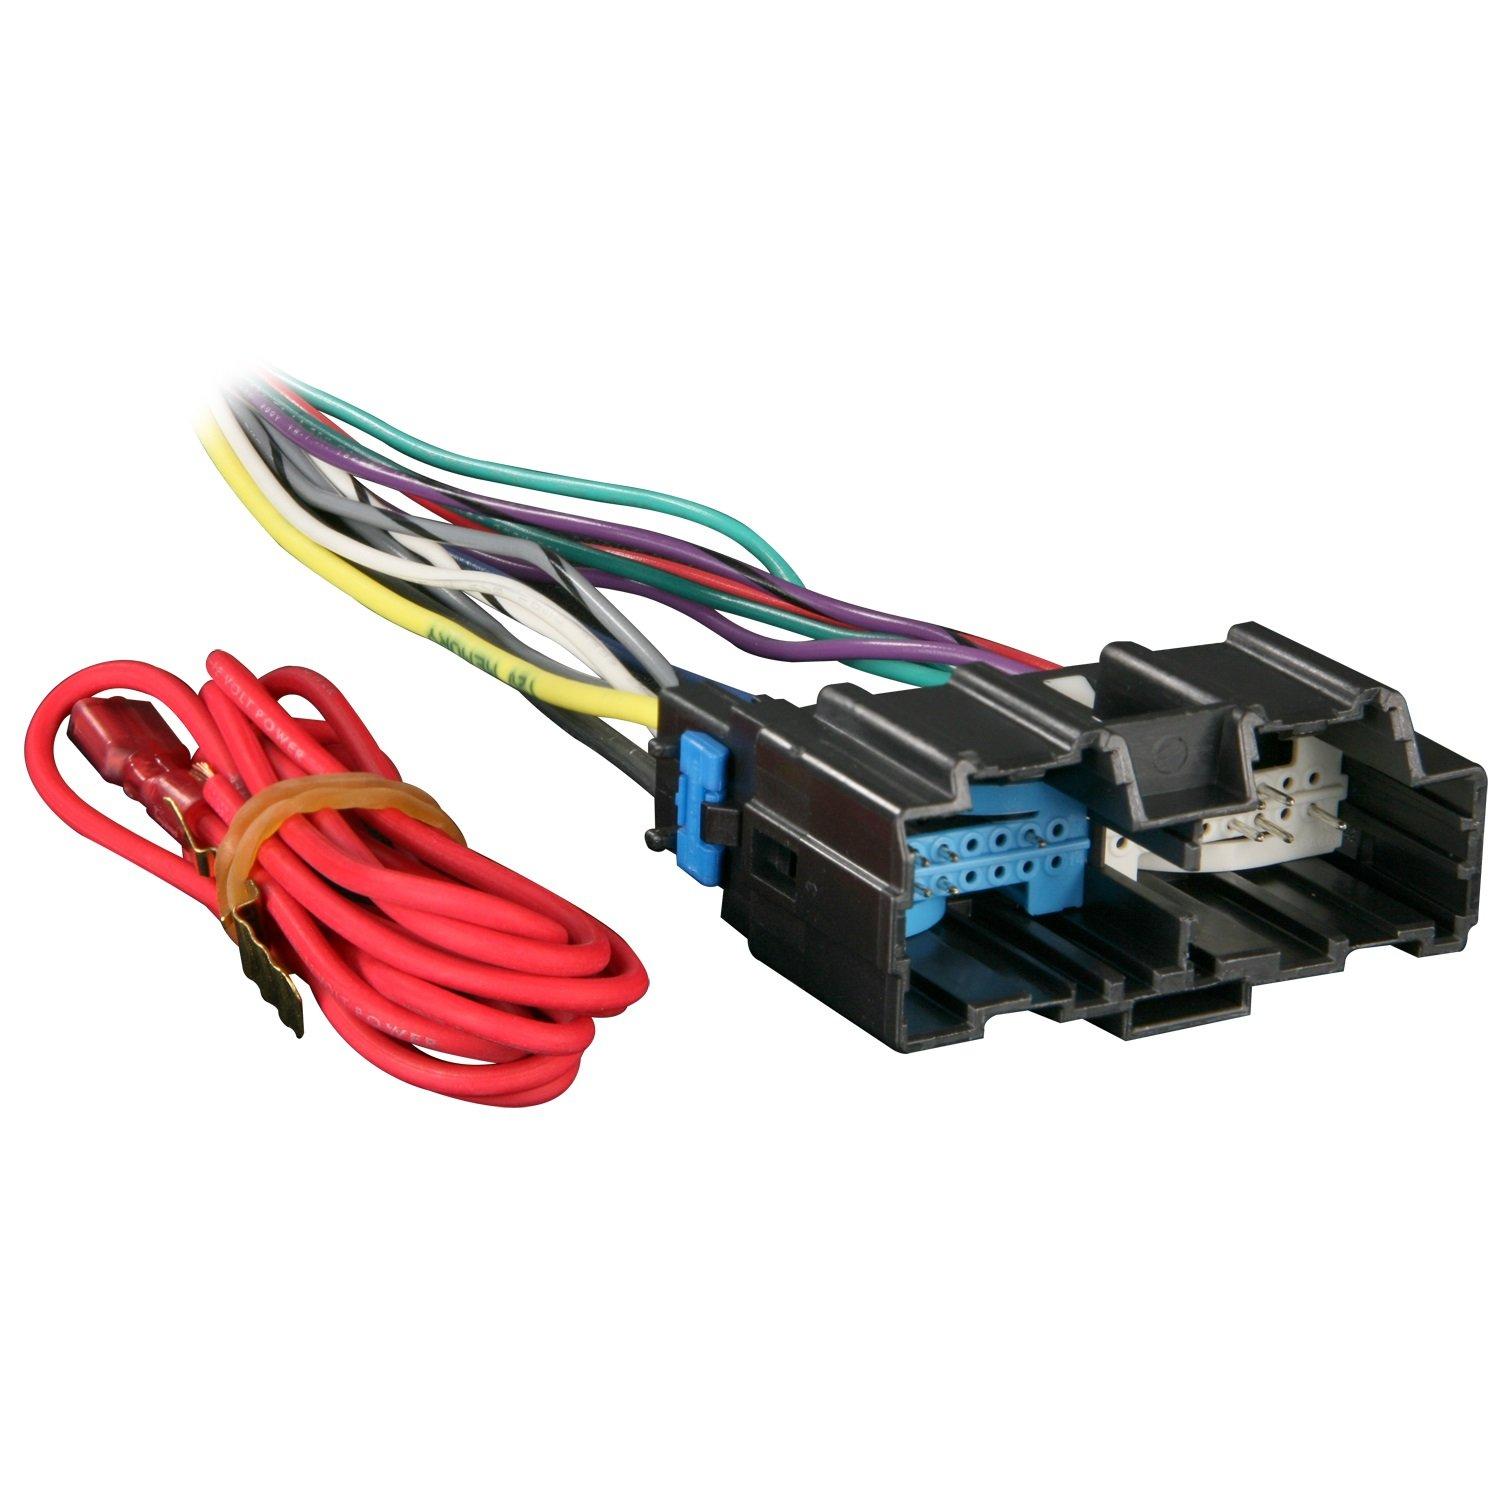 71ZzH dyg7L._SL1500_ amazon com metra 70 2105 radio wiring harness for impala monte 2010 chevy impala wiring harness at readyjetset.co